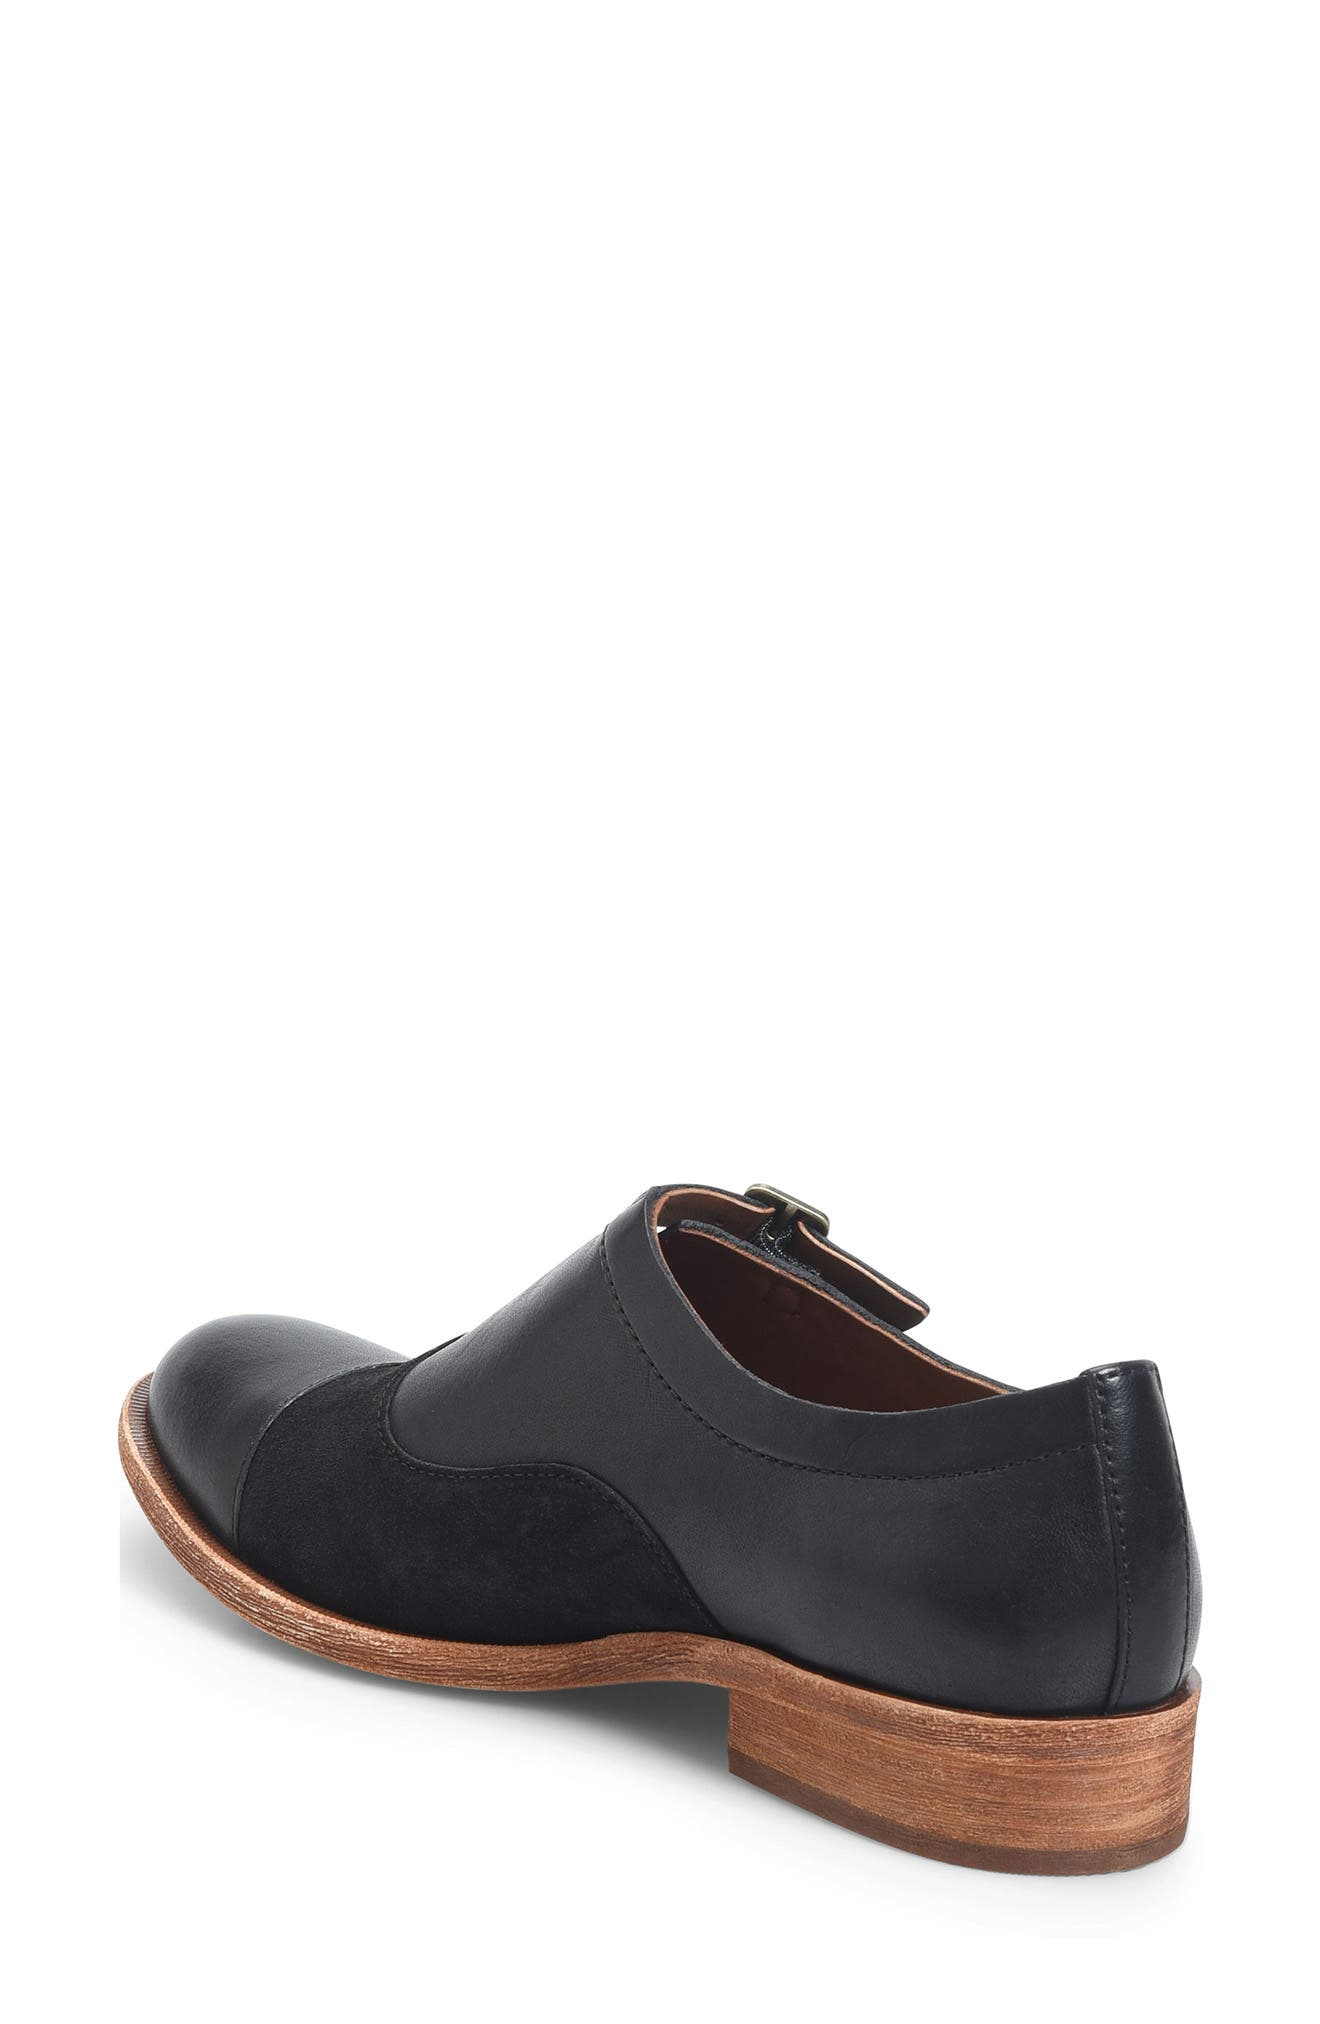 'Niseda' Oxford,                             Alternate thumbnail 3, color,                             Black Leather Suede Combo